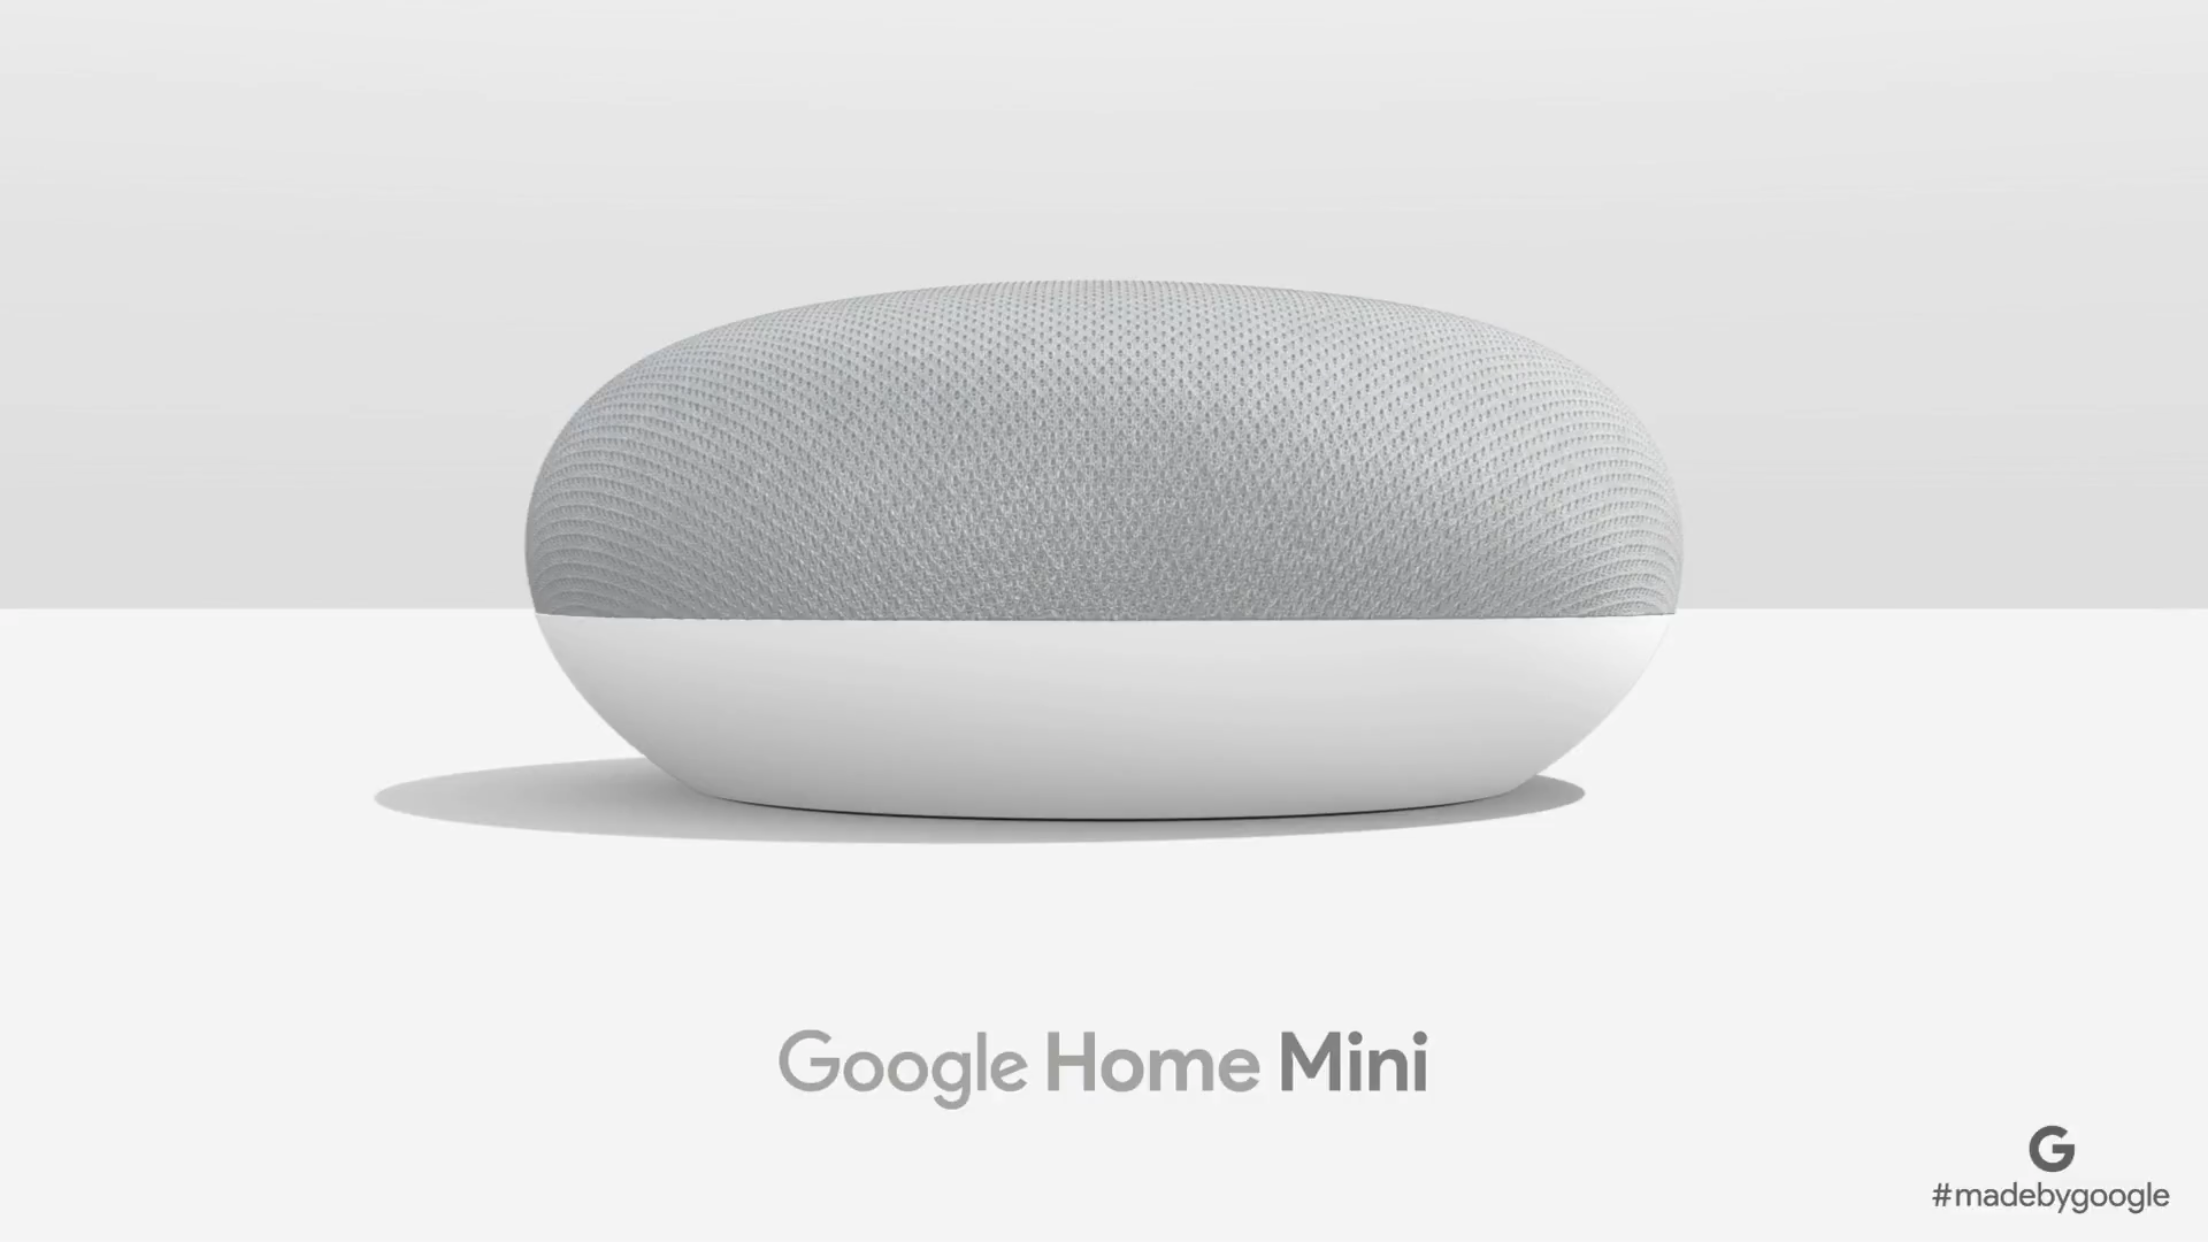 Google Home Decor Stunning Google Reveals New Home Mini Poweredgoogle Assistant Review